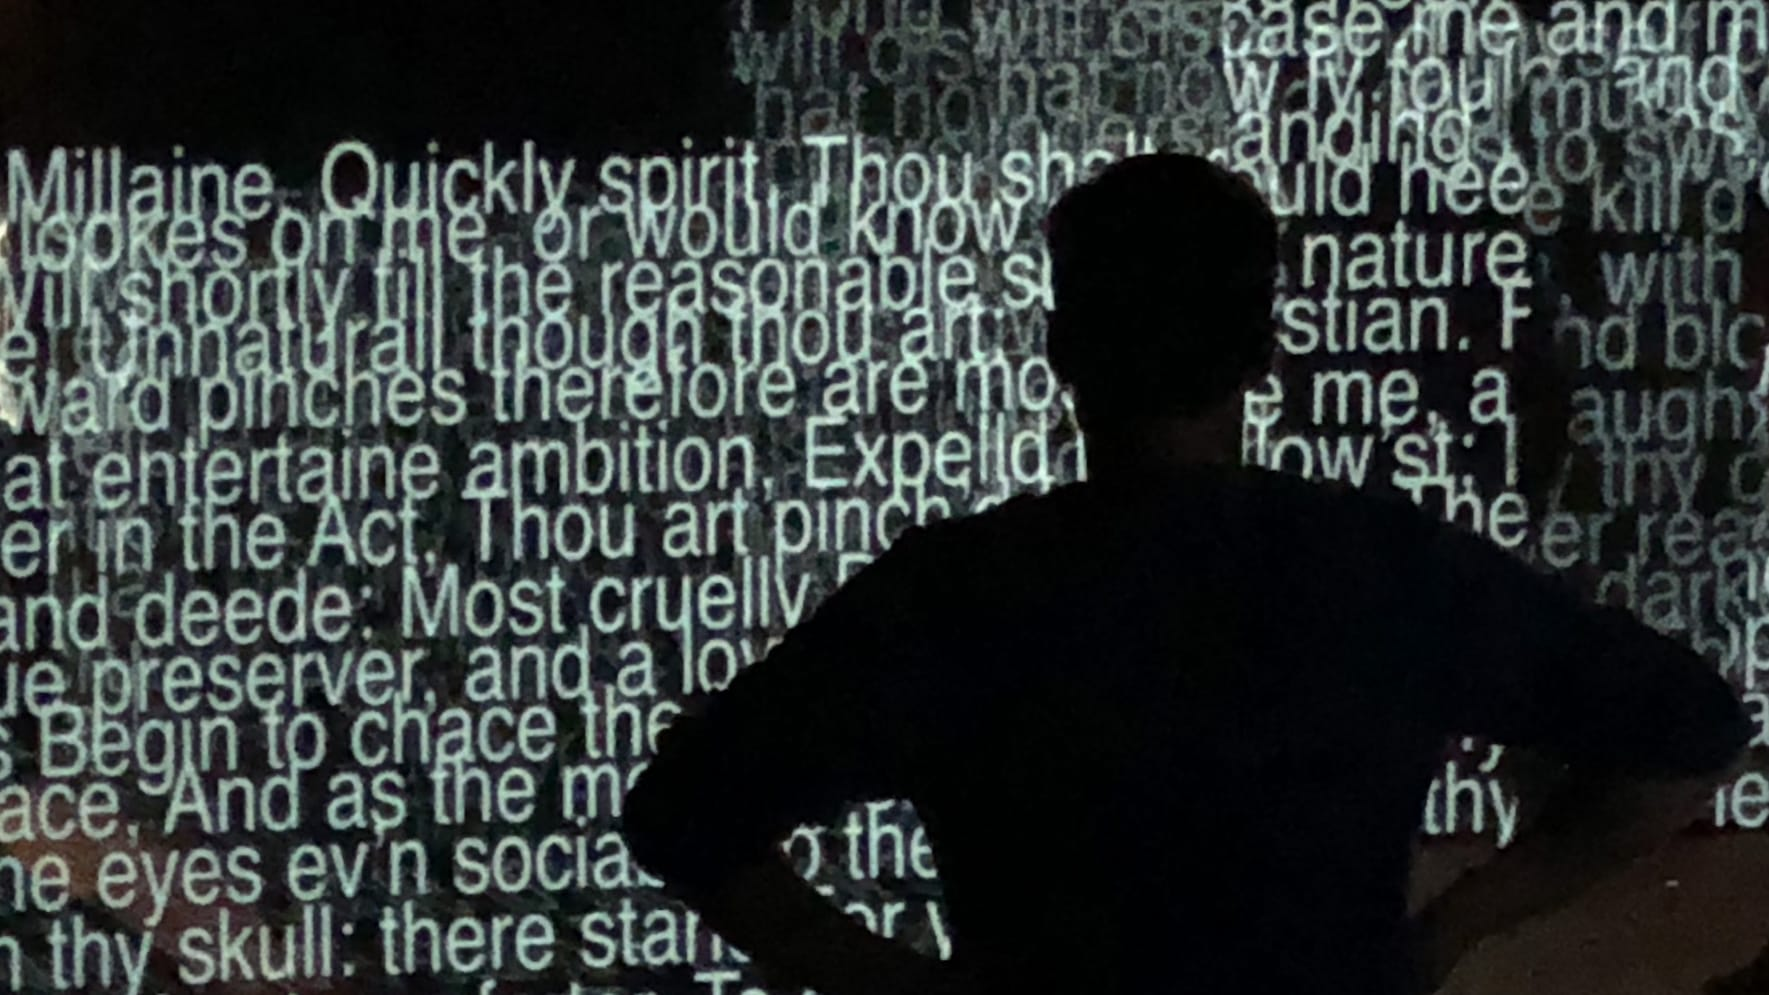 A silhouette of a man standing in front of a wall of projected captions